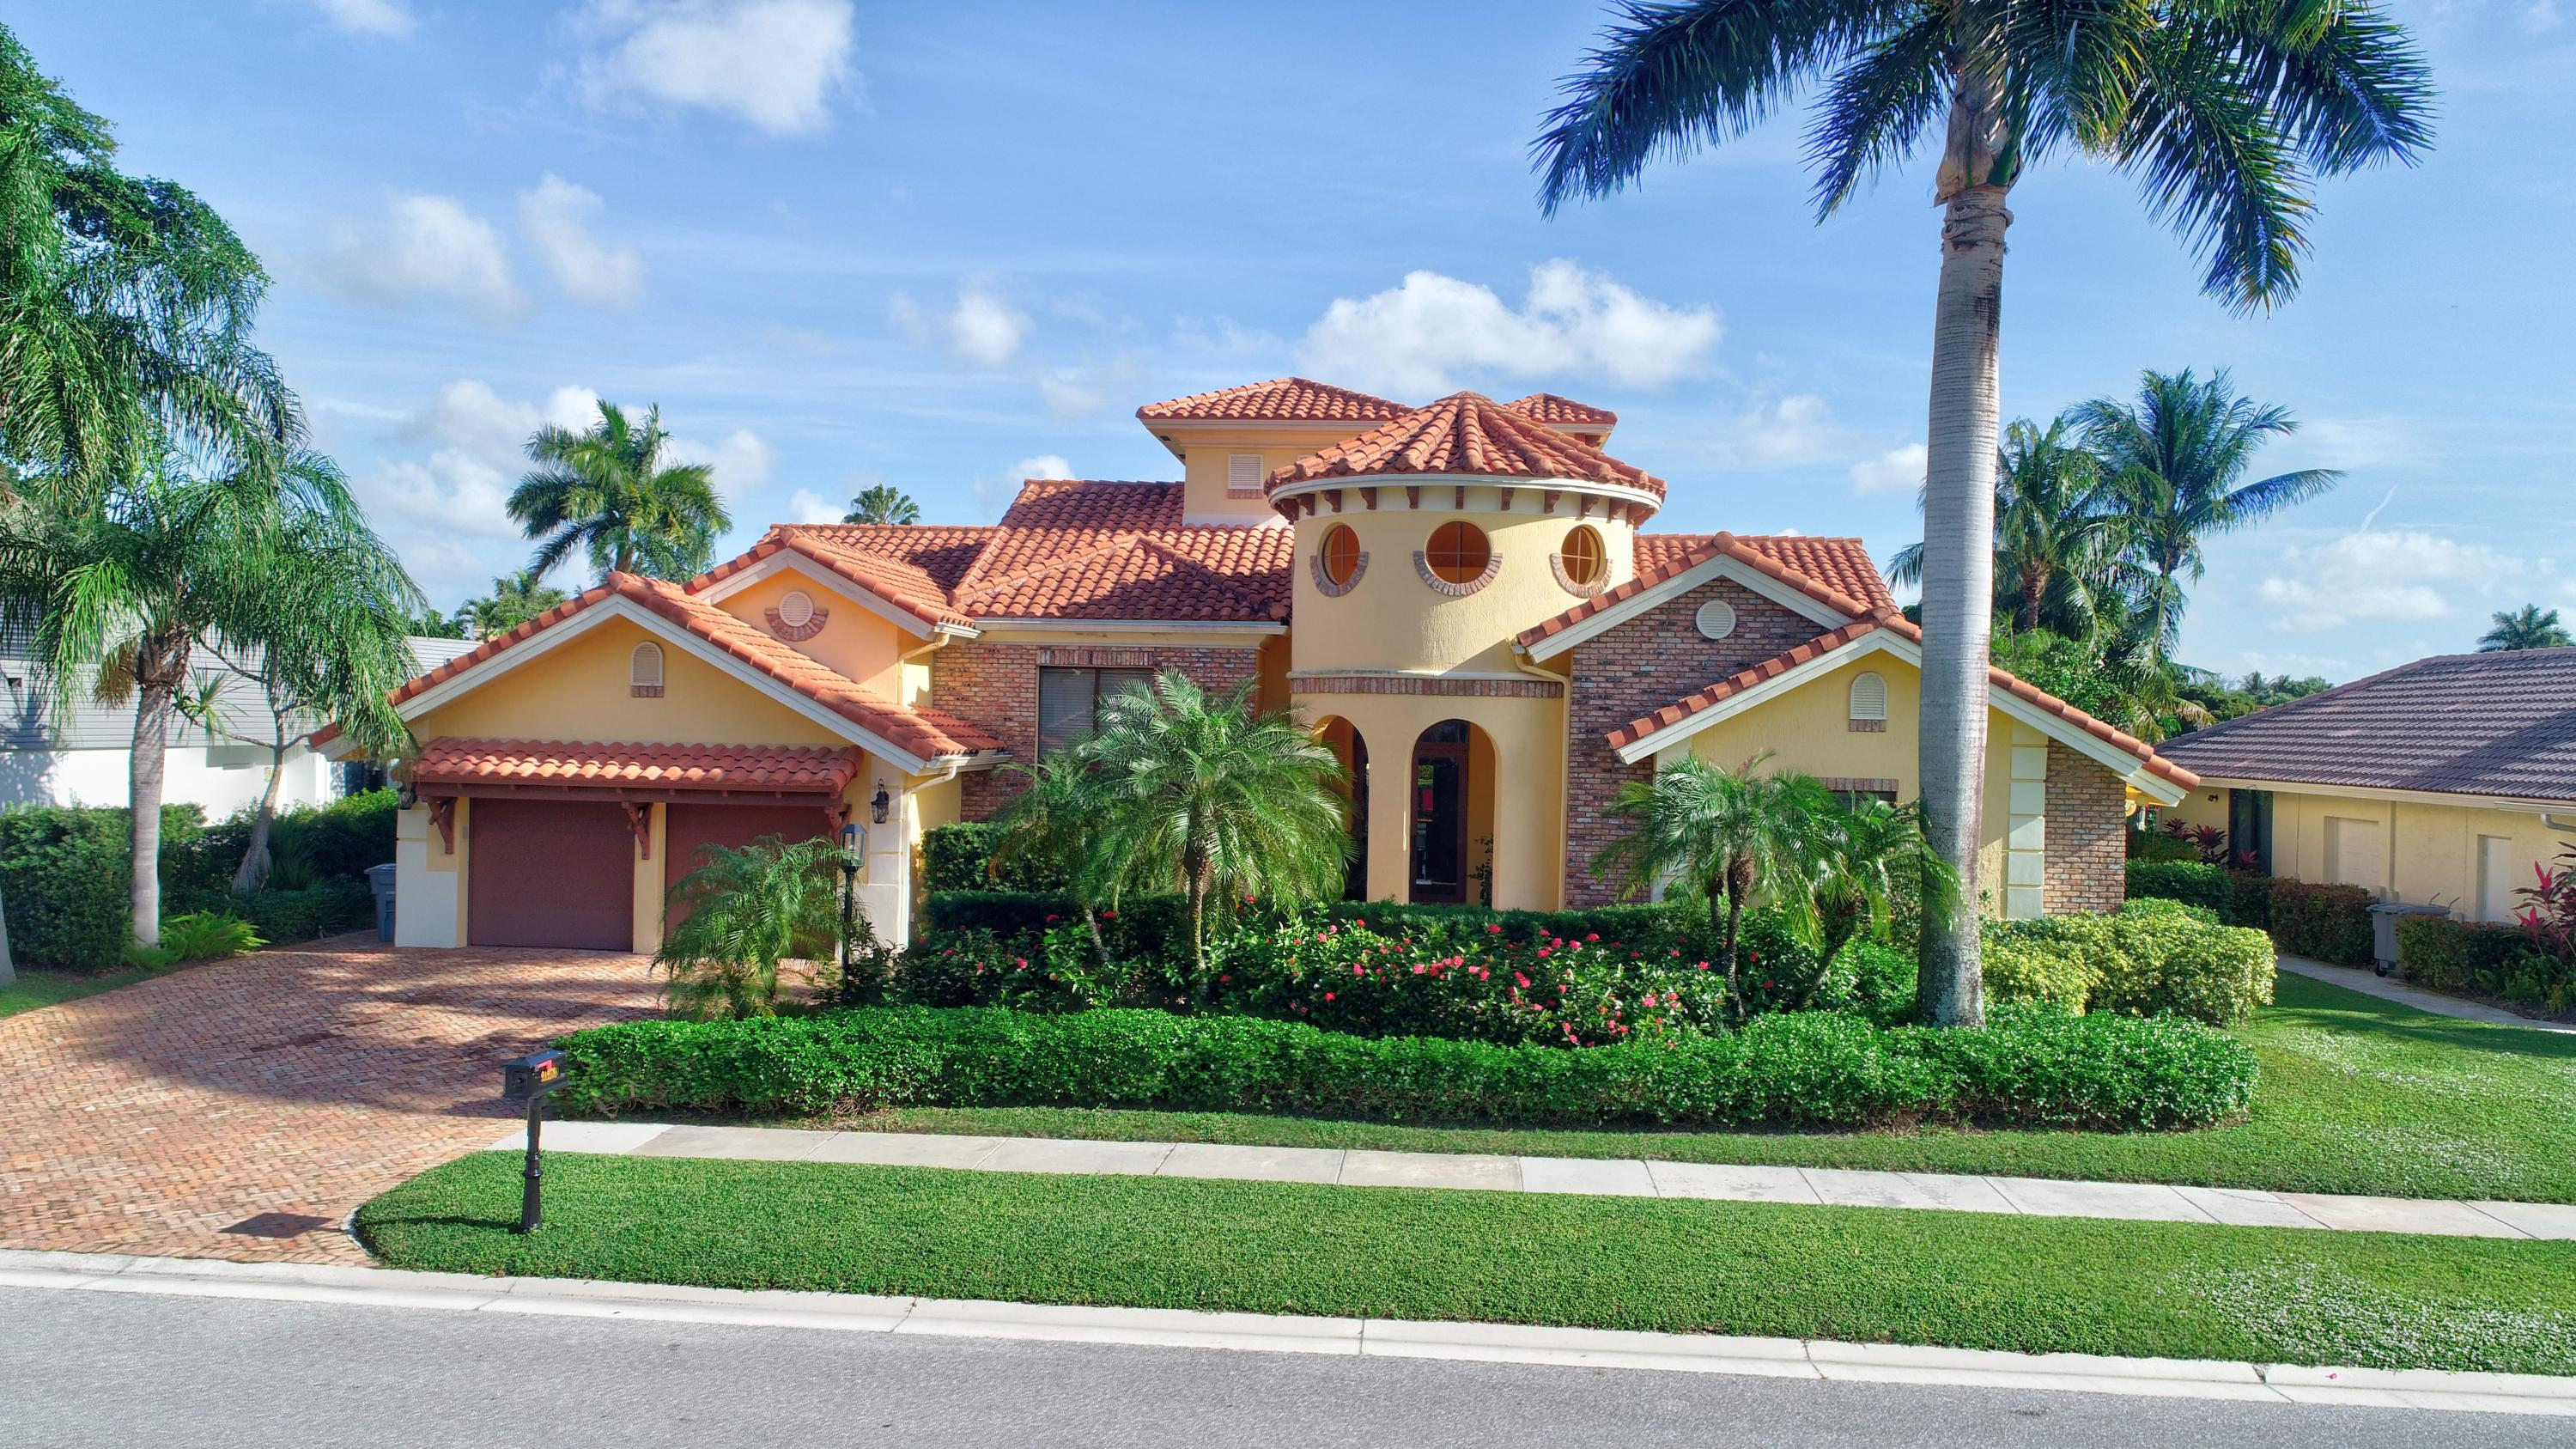 Photo of 21278 Bellechasse Court, Boca Raton, FL 33433